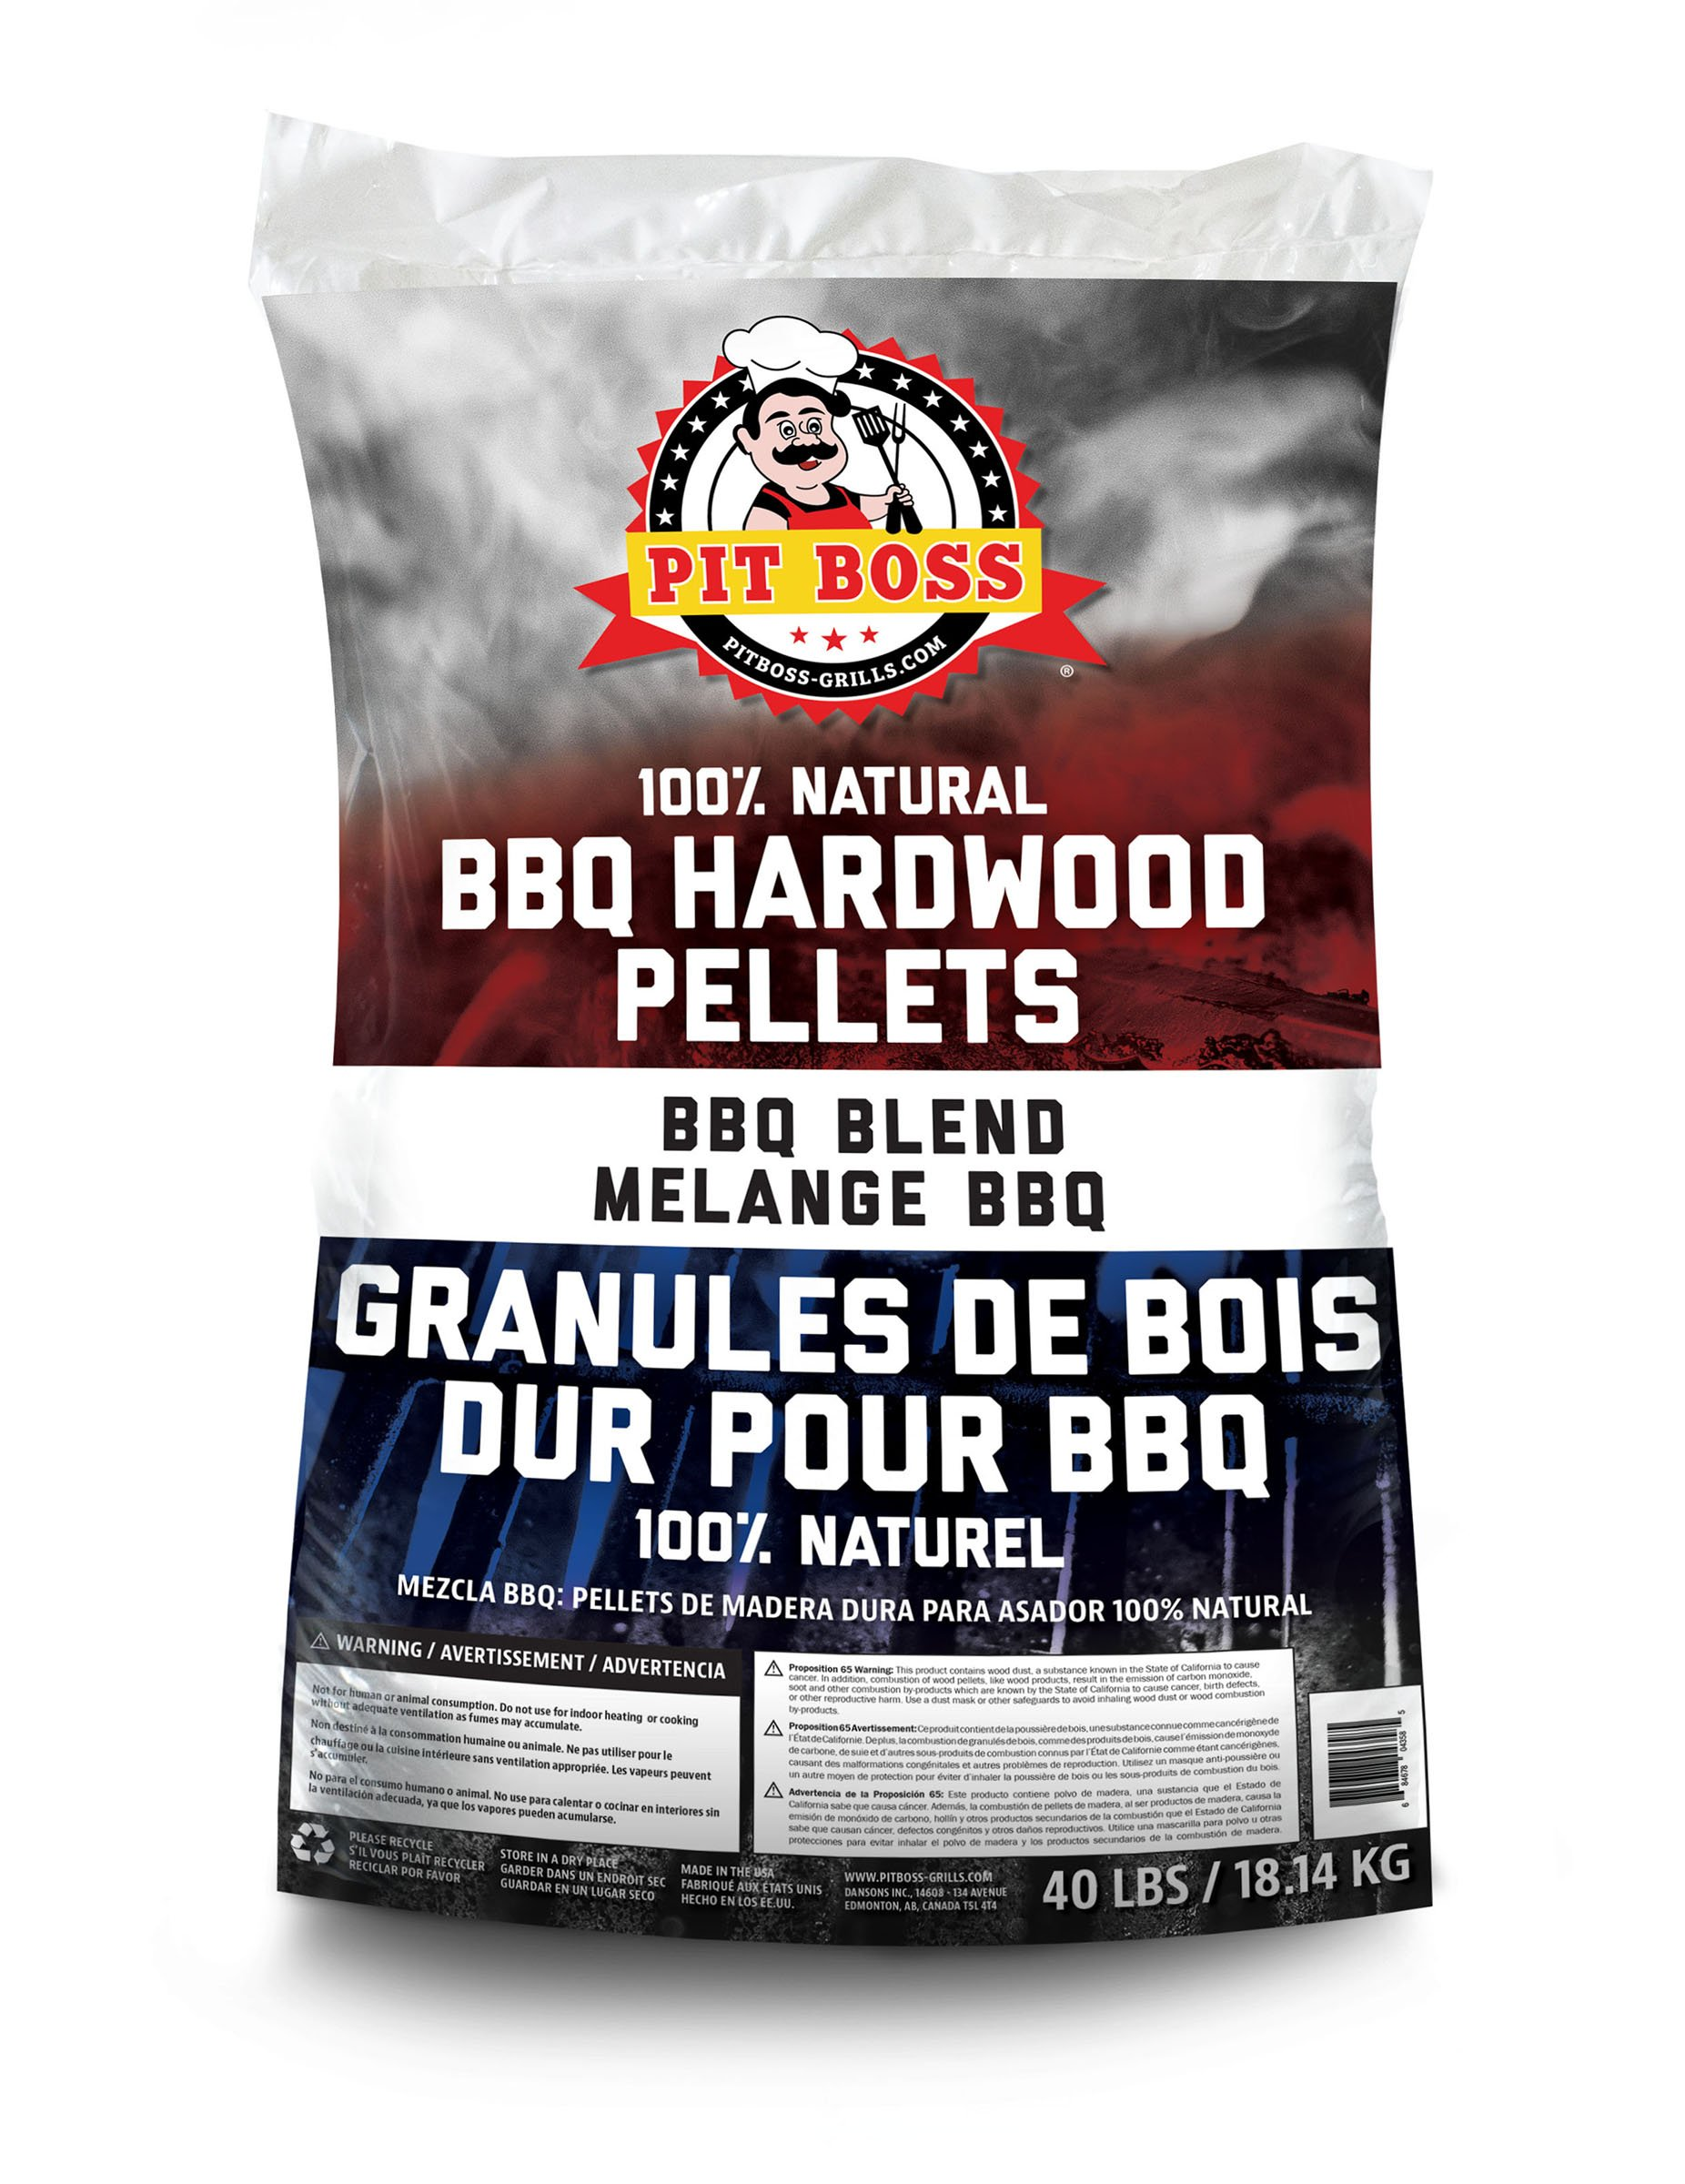 Pit Boss BBQ Wood Pellets, 40 lb, BBQ Blend